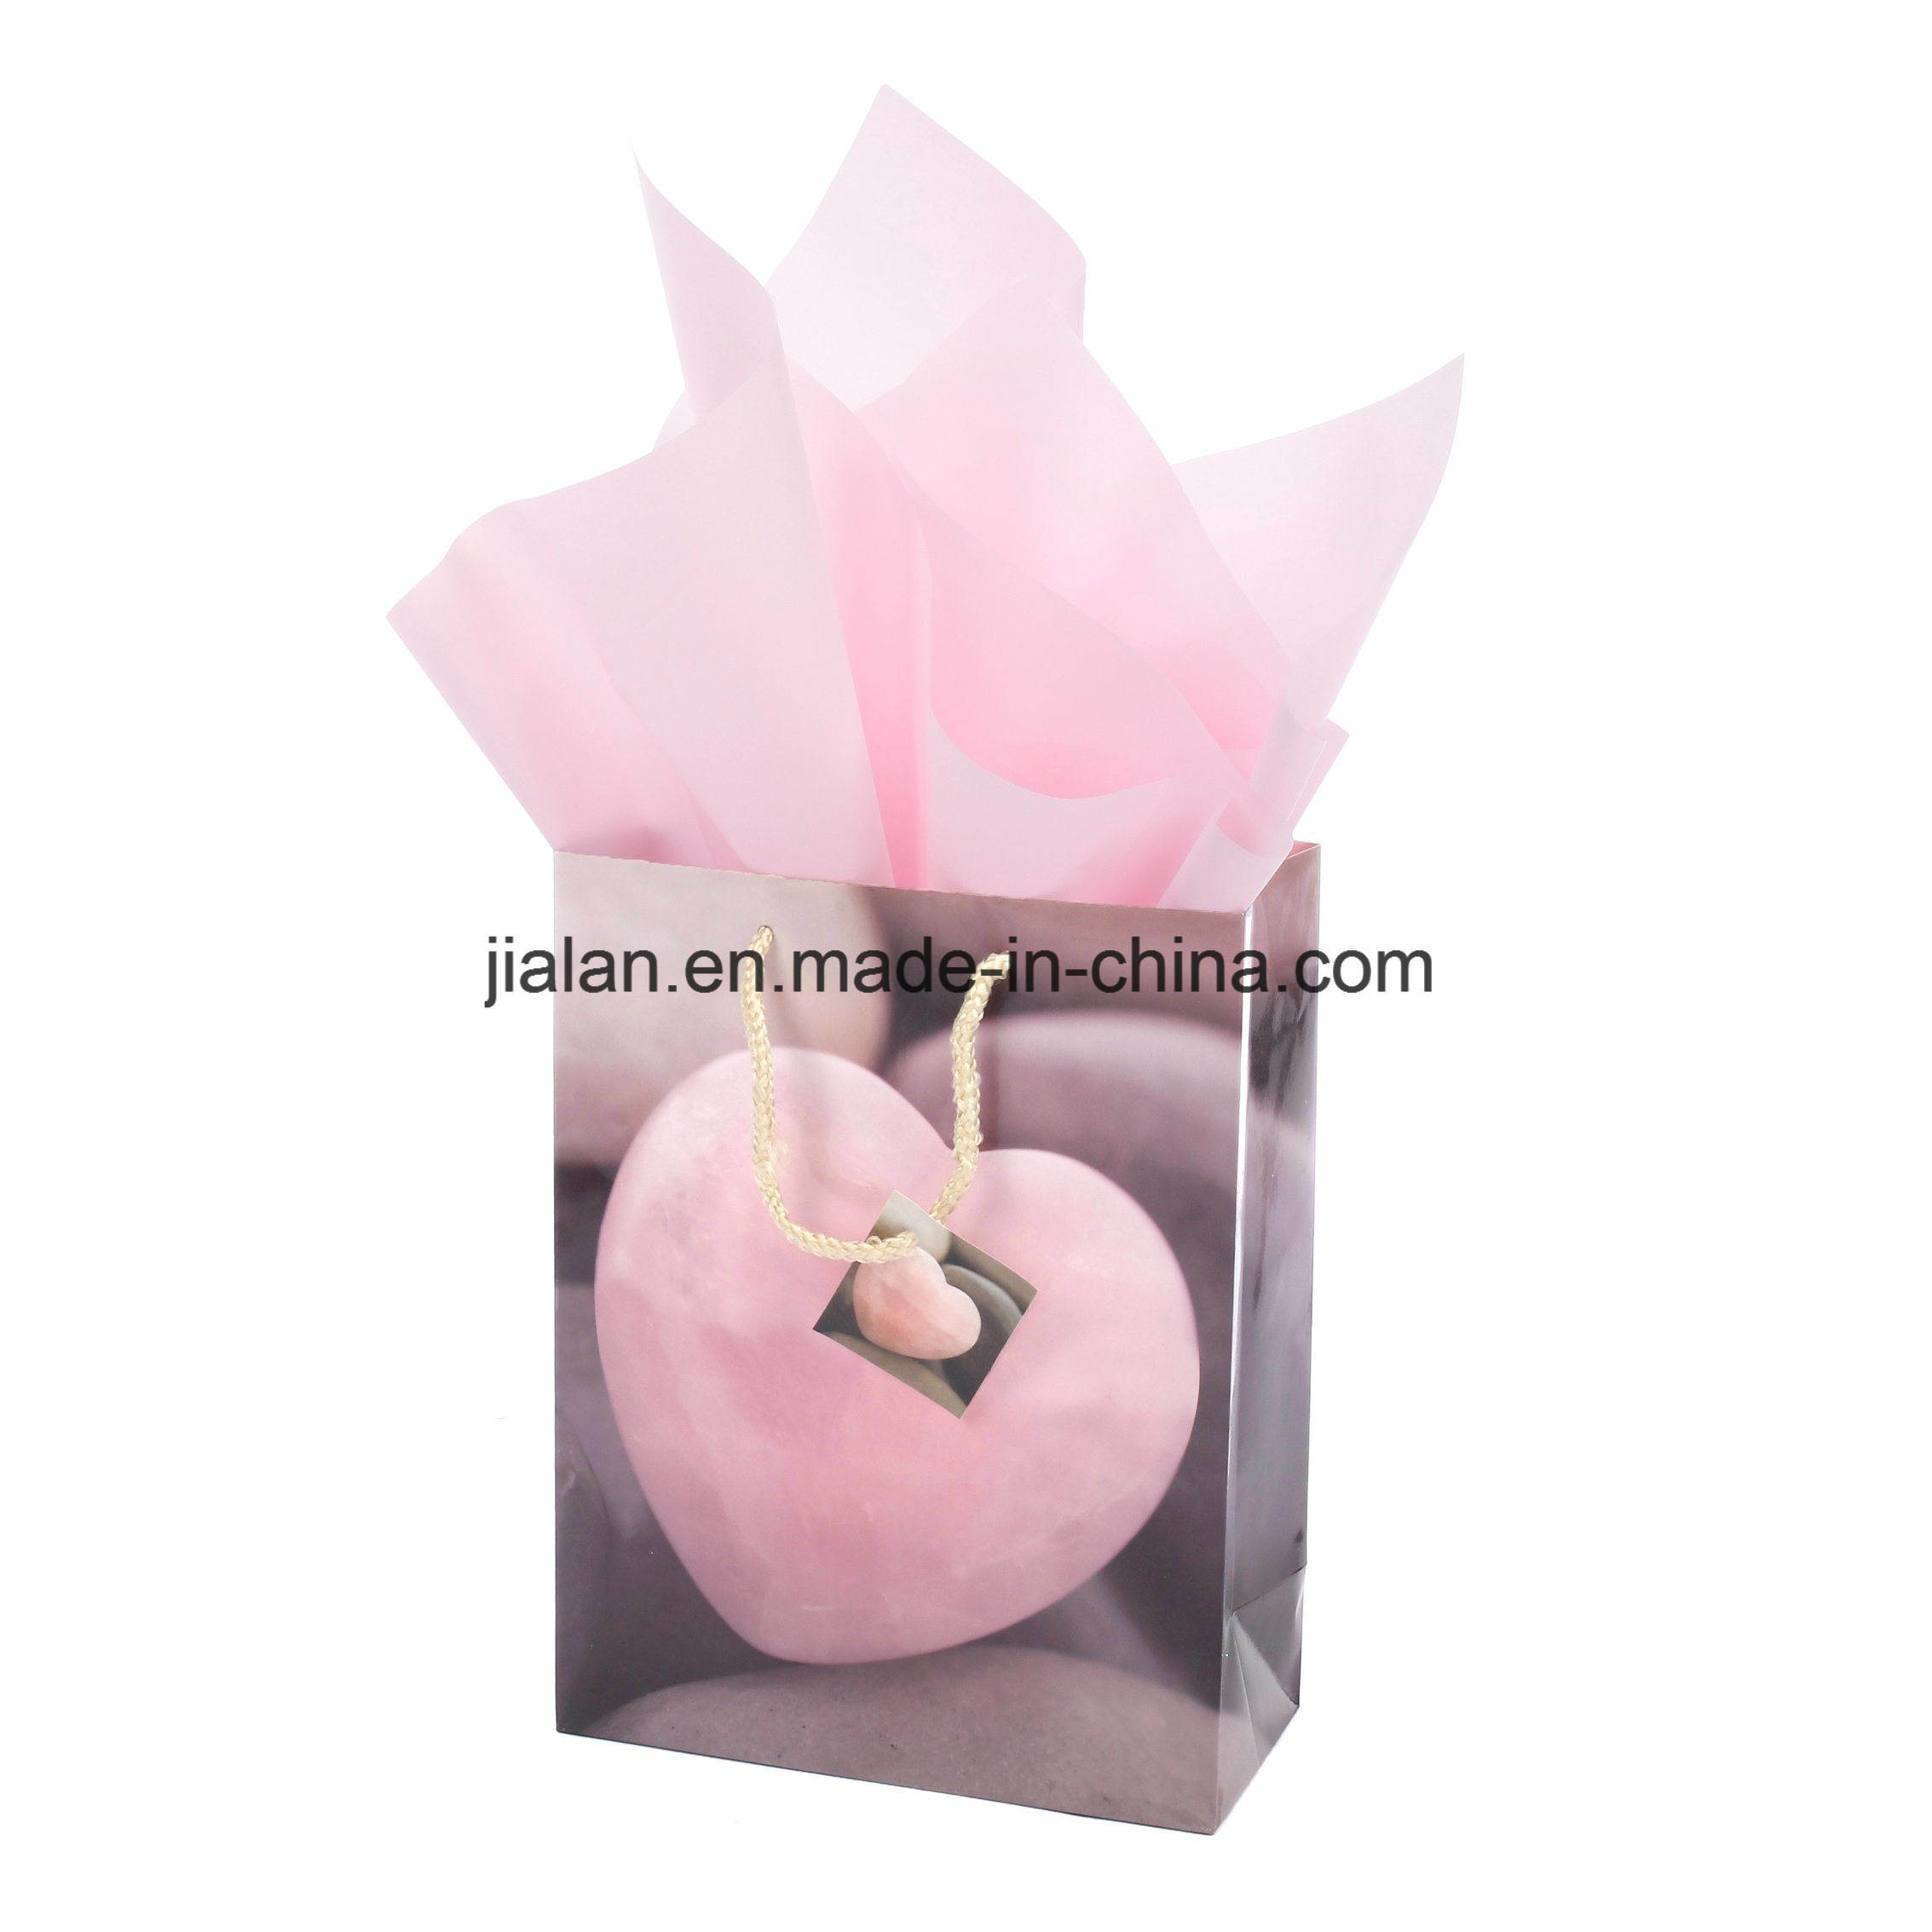 China Gift Bags, Gift Bags Manufacturers, Suppliers | Made-in-China.com